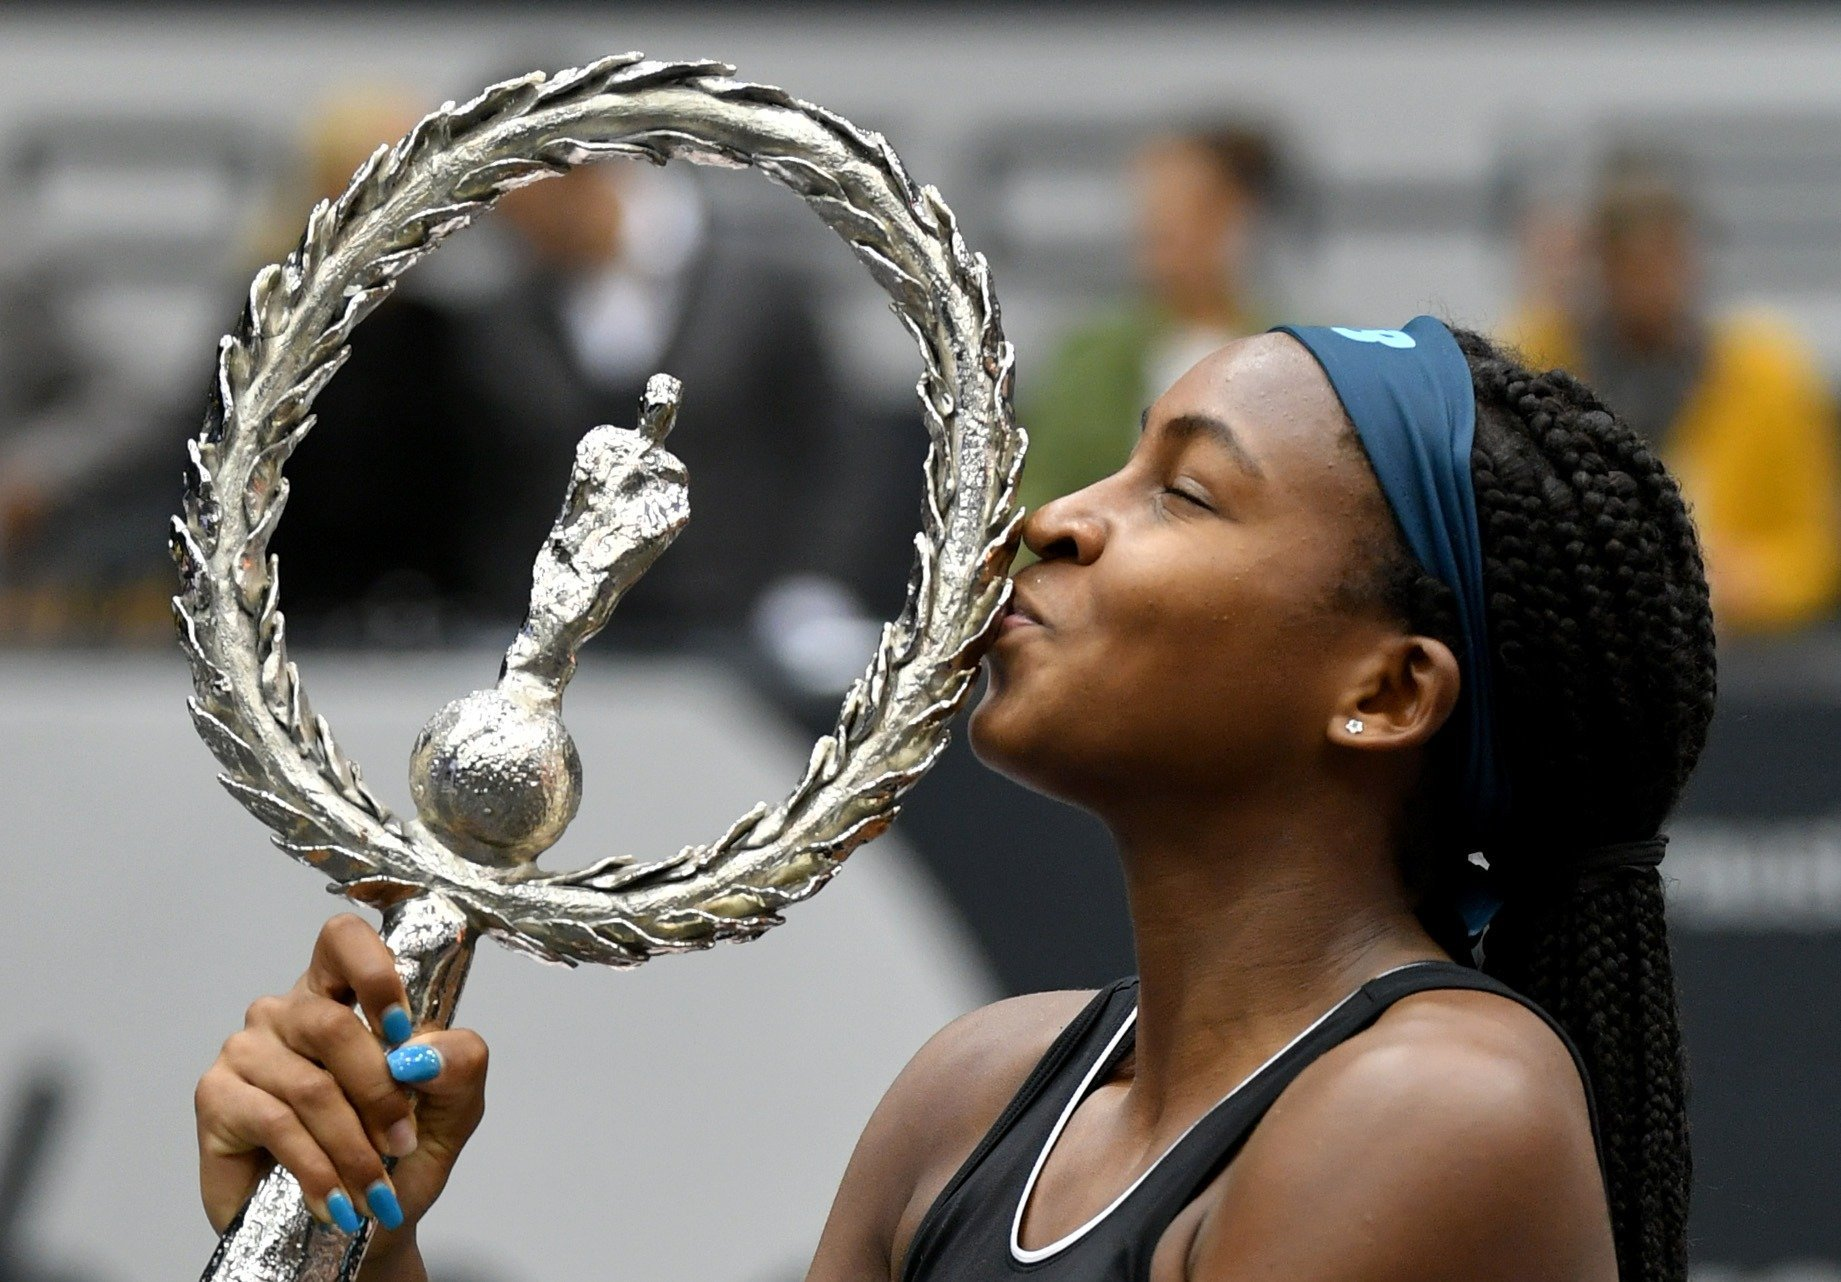 At 15, Coco Gauff is only getting started